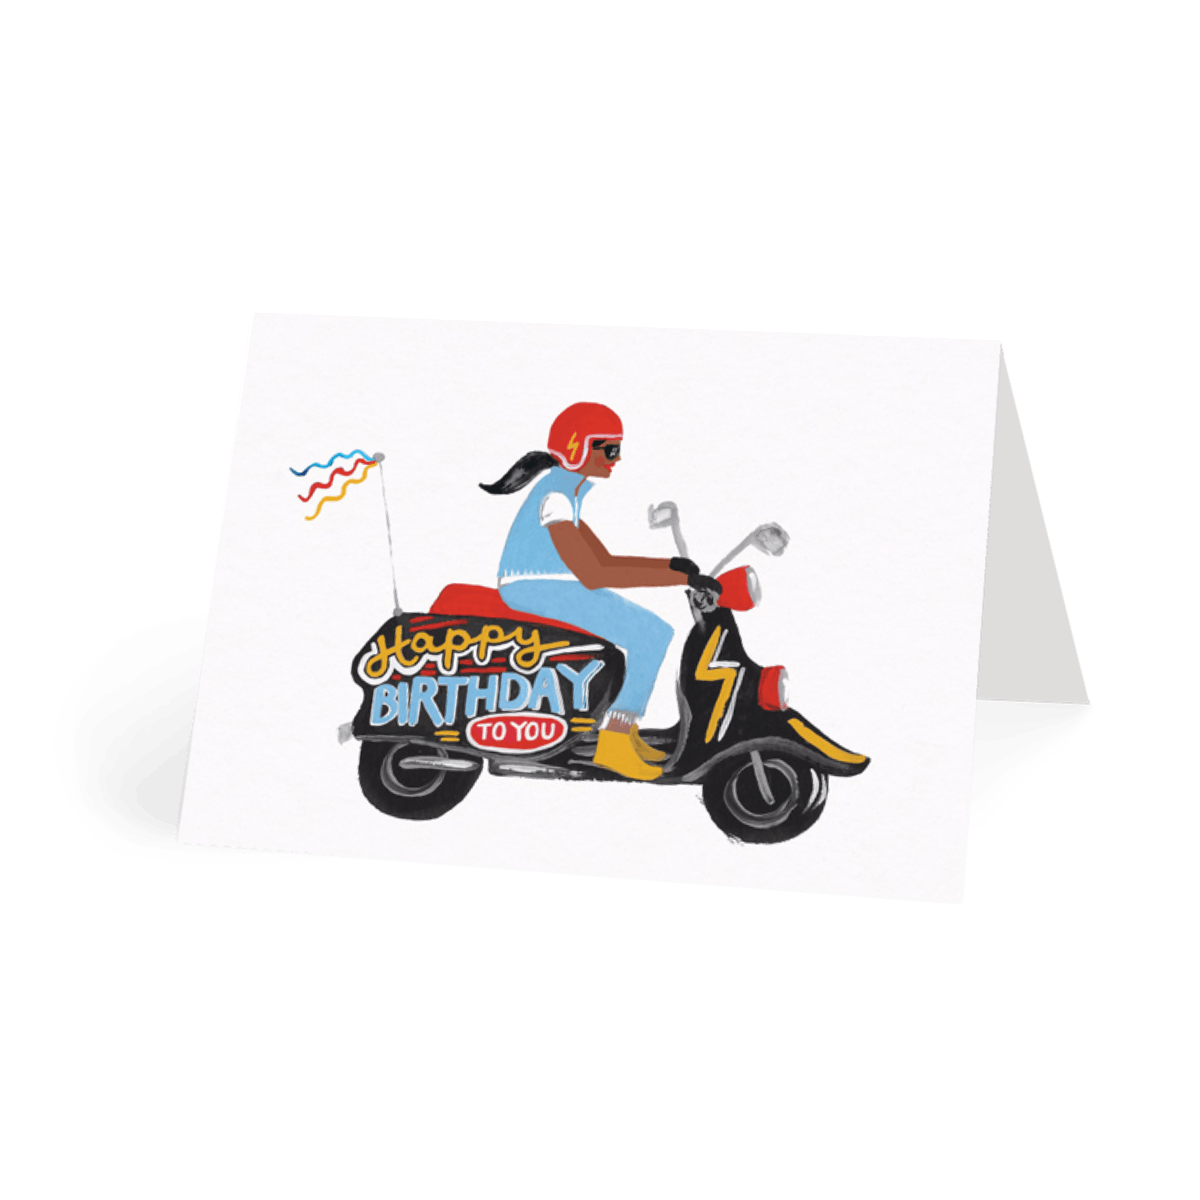 Https%3a%2f%2fwww.papier.com%2fproduct image%2f30604%2f14%2fbirthday scooter 7709 front 1509384172.png?ixlib=rb 1.1